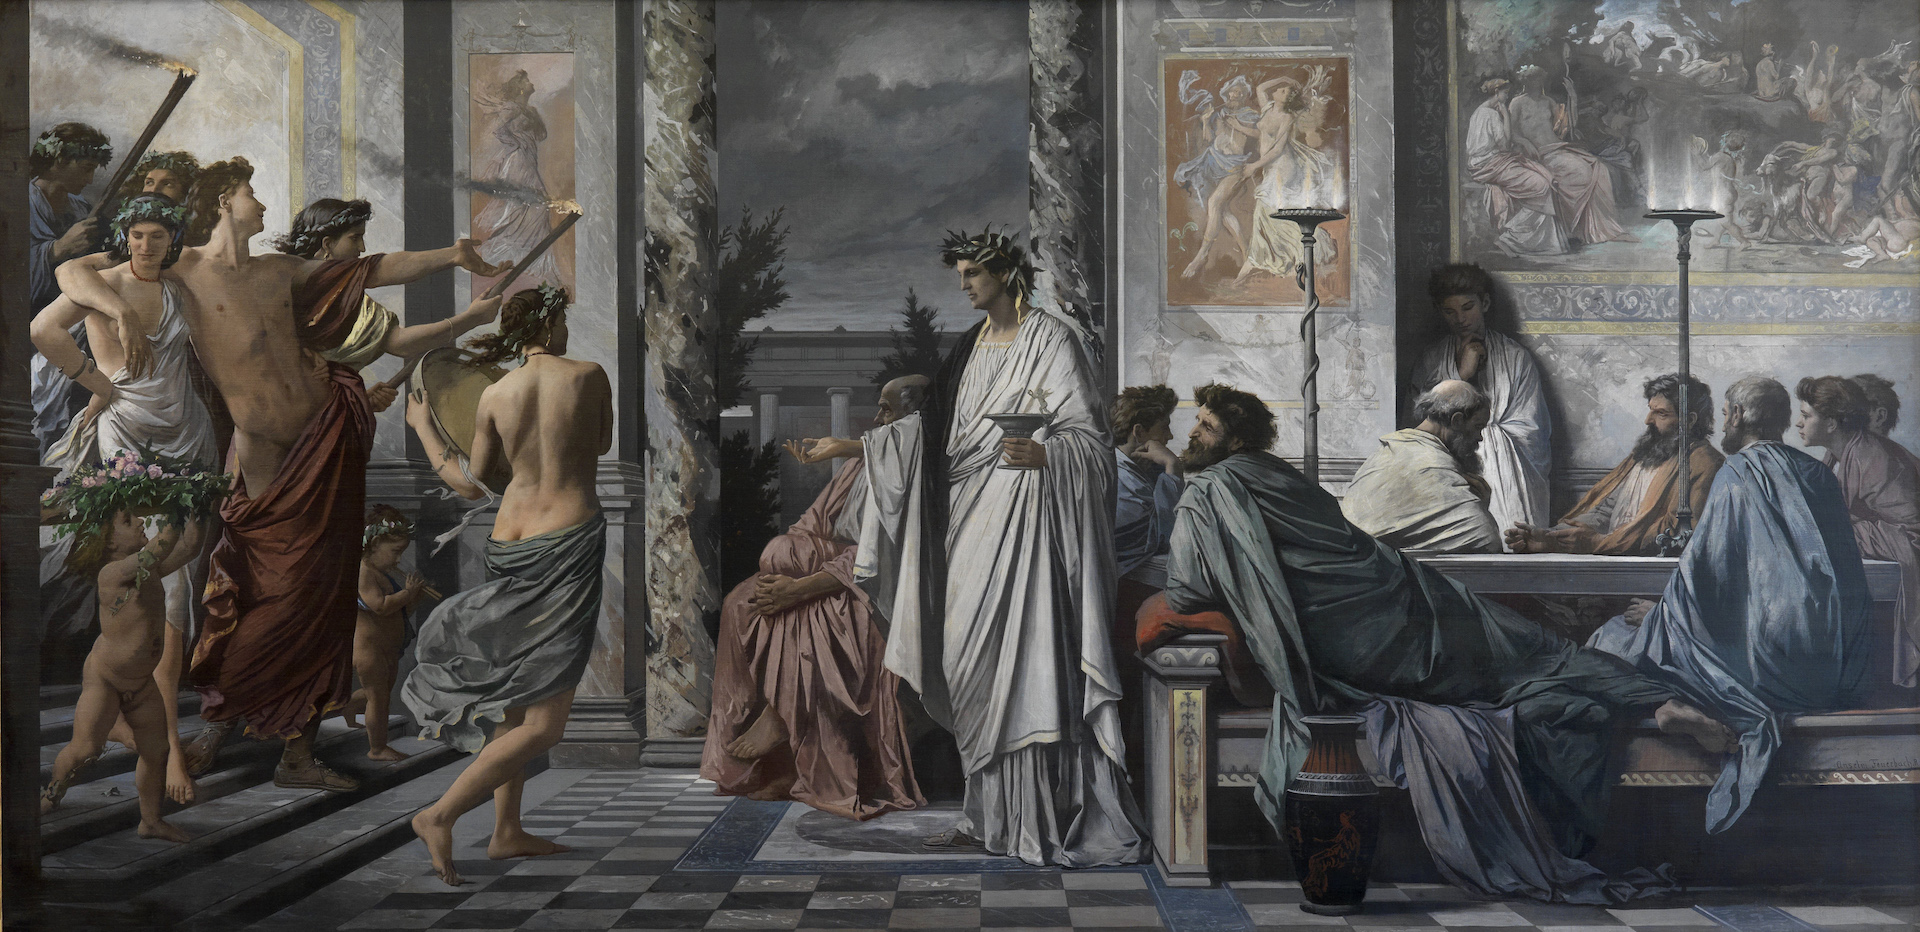 Painting of Plato's Symposium.